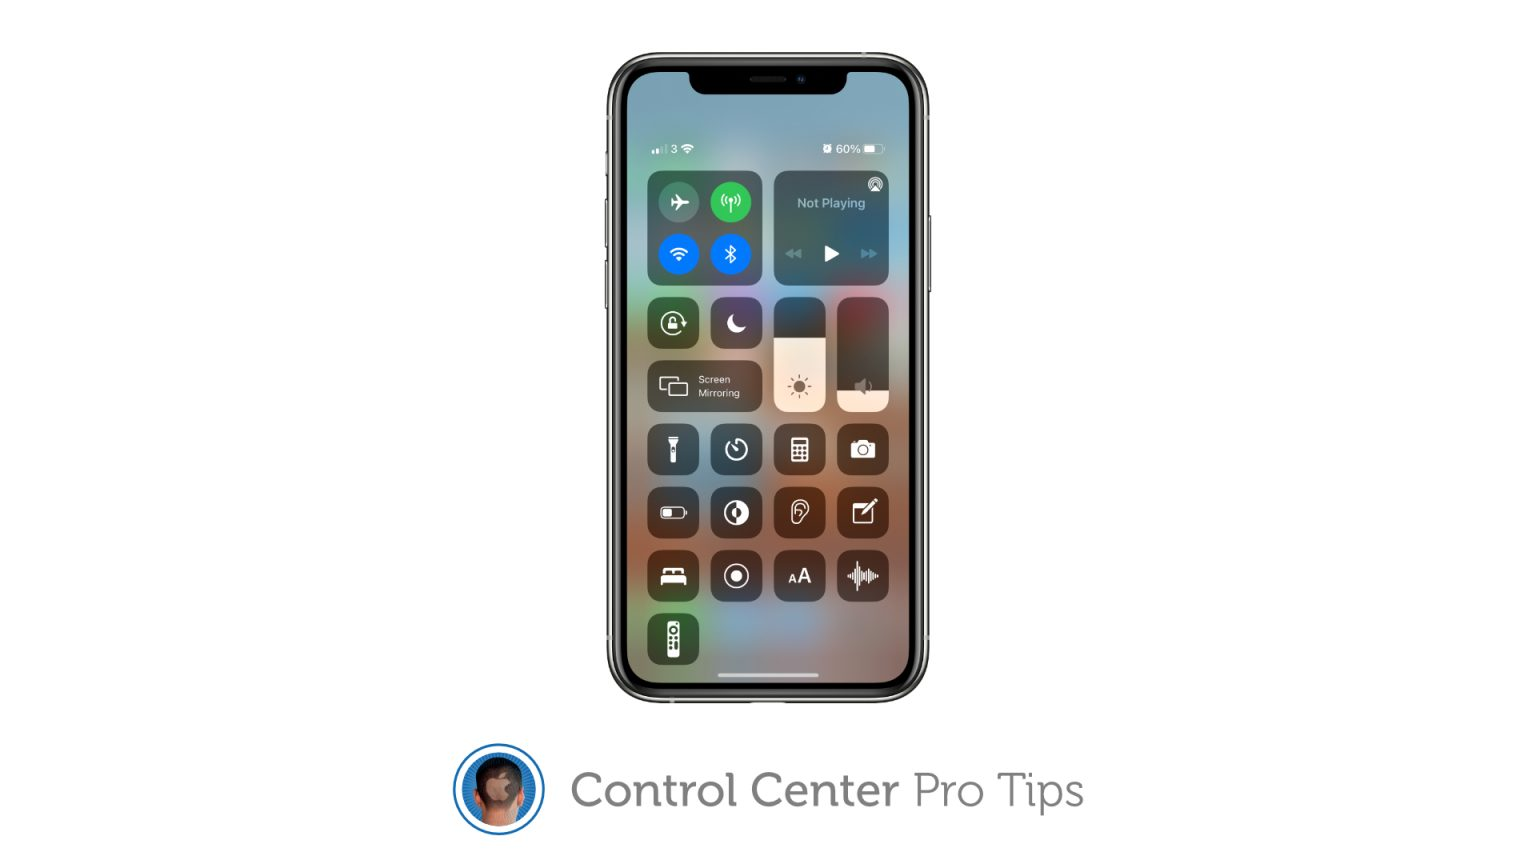 Disable lock screen access to Control Center on iPhone and iPad